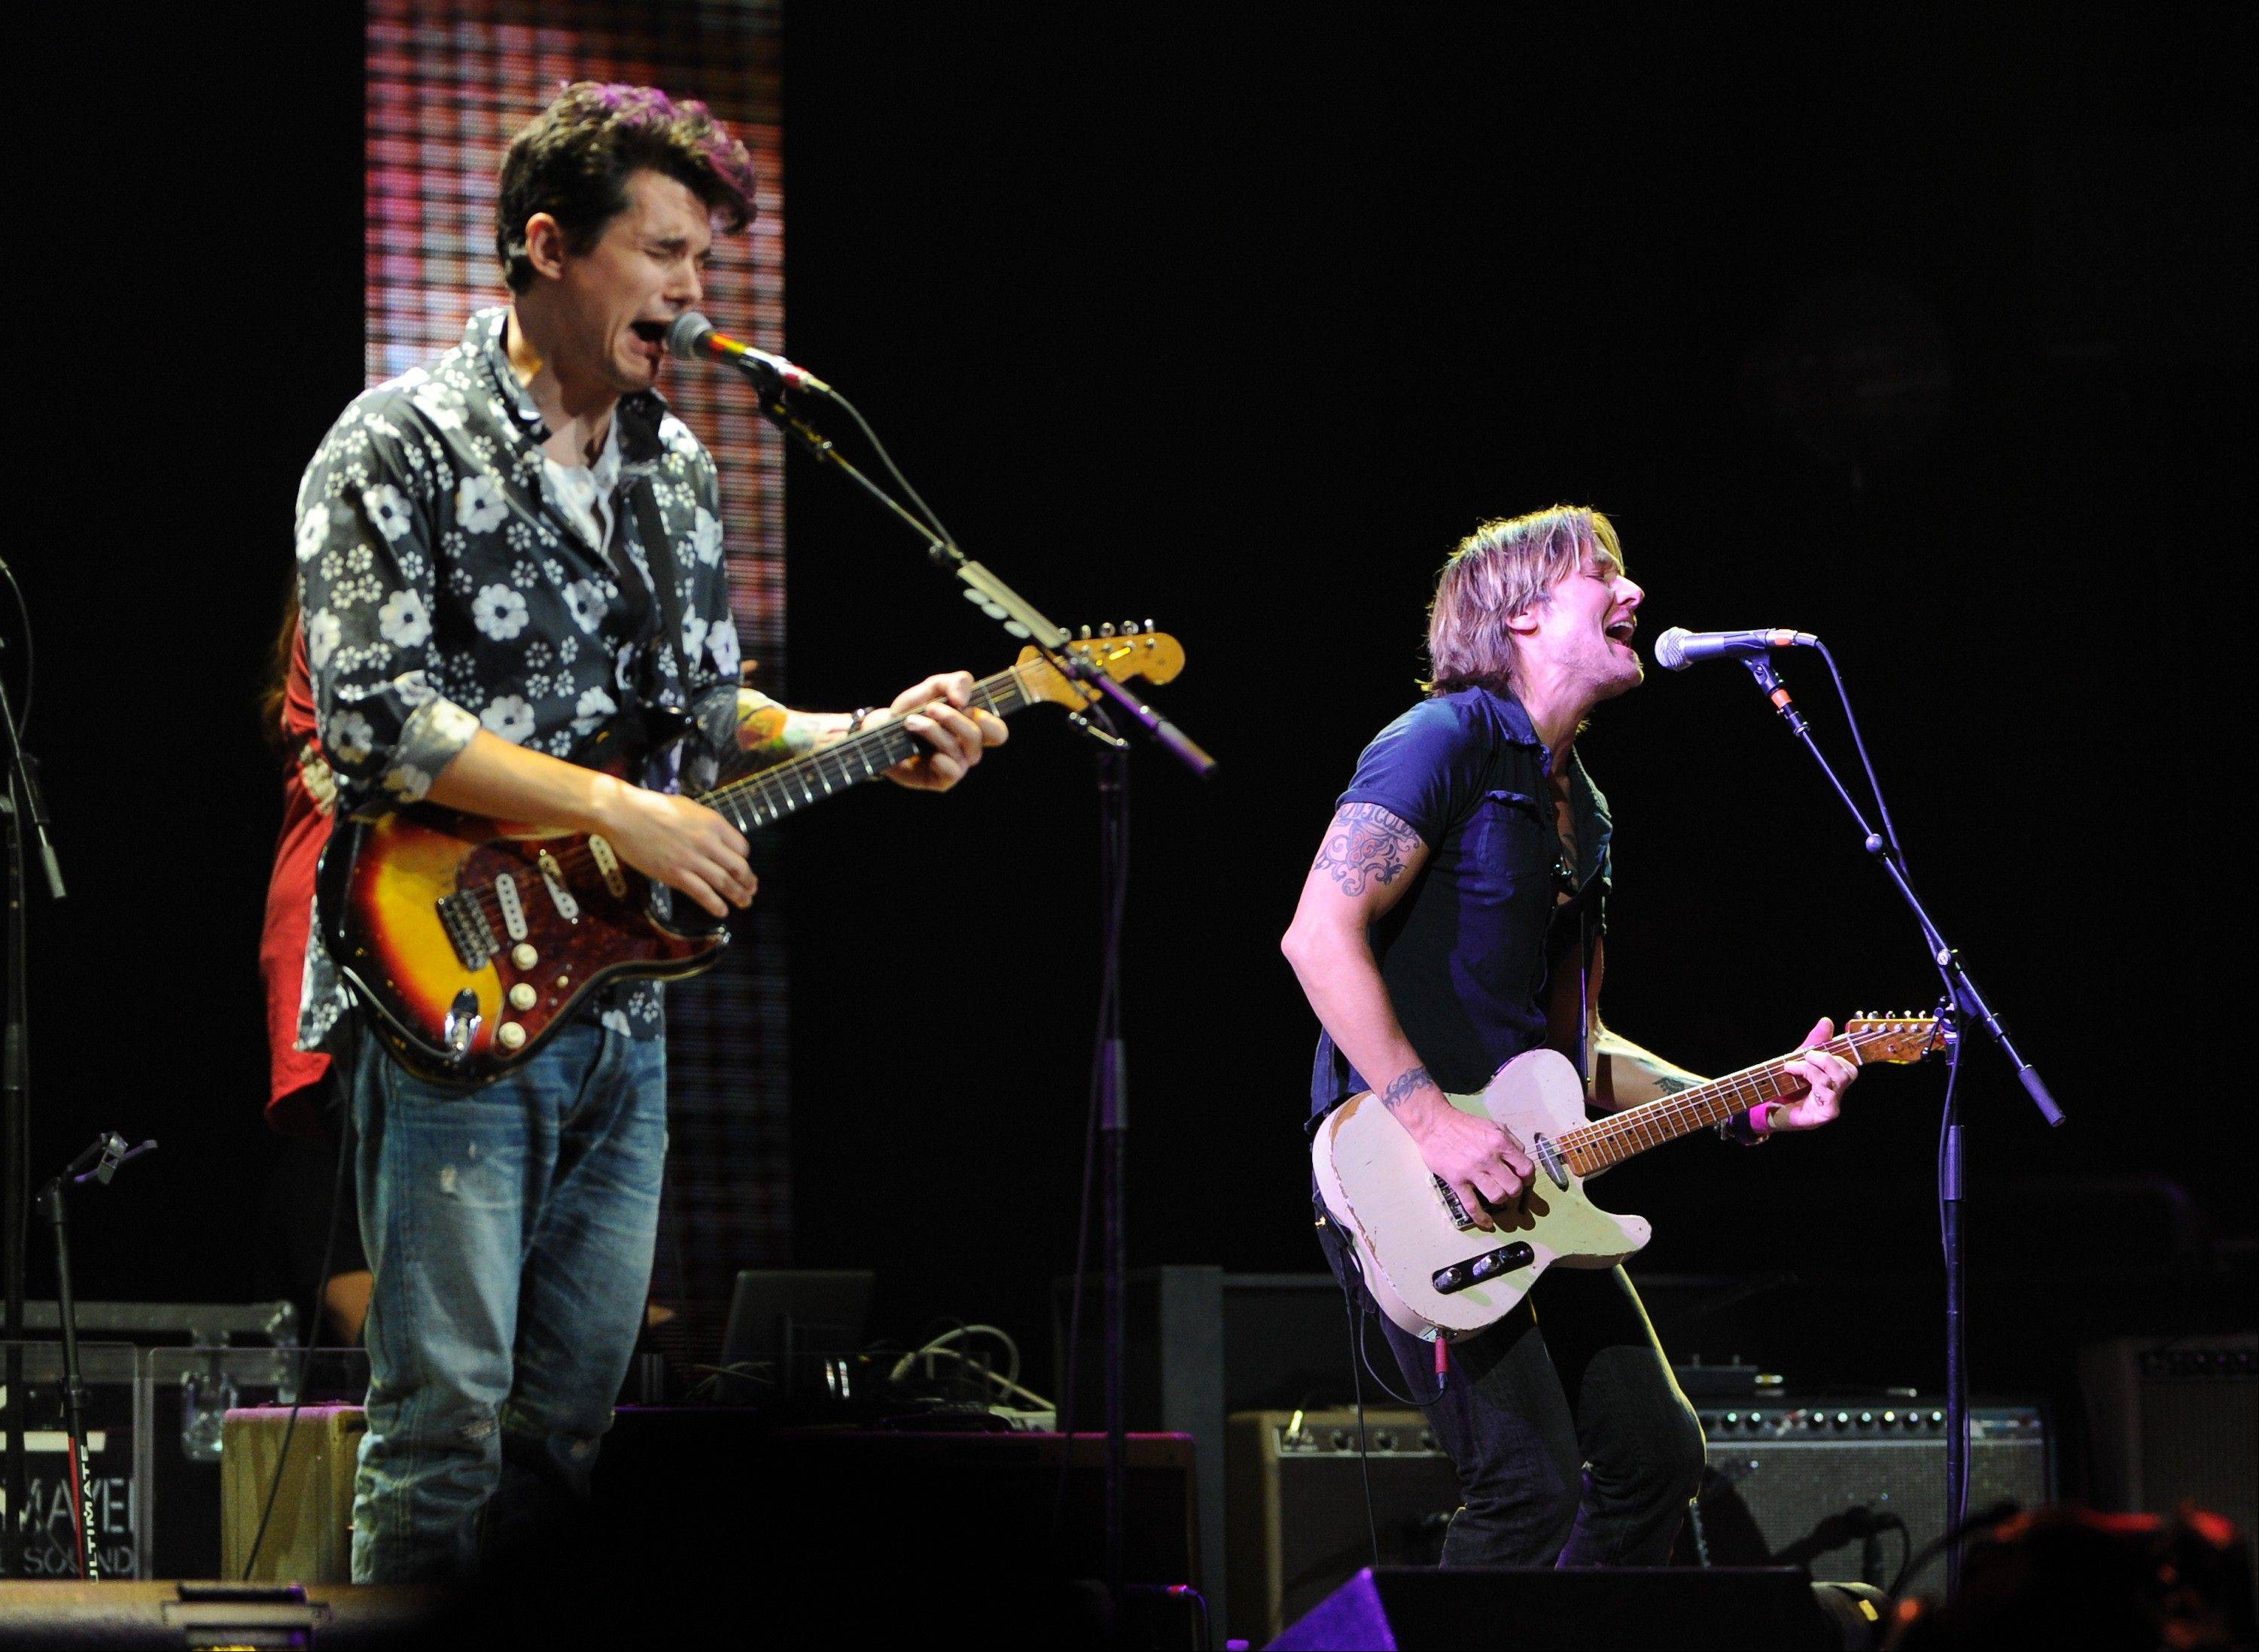 Musicians John Mayer, left, and Keith Urban perform together at Eric Clapton's Crossroads Guitar Festival 2013 at Madison Square Garden on Friday.